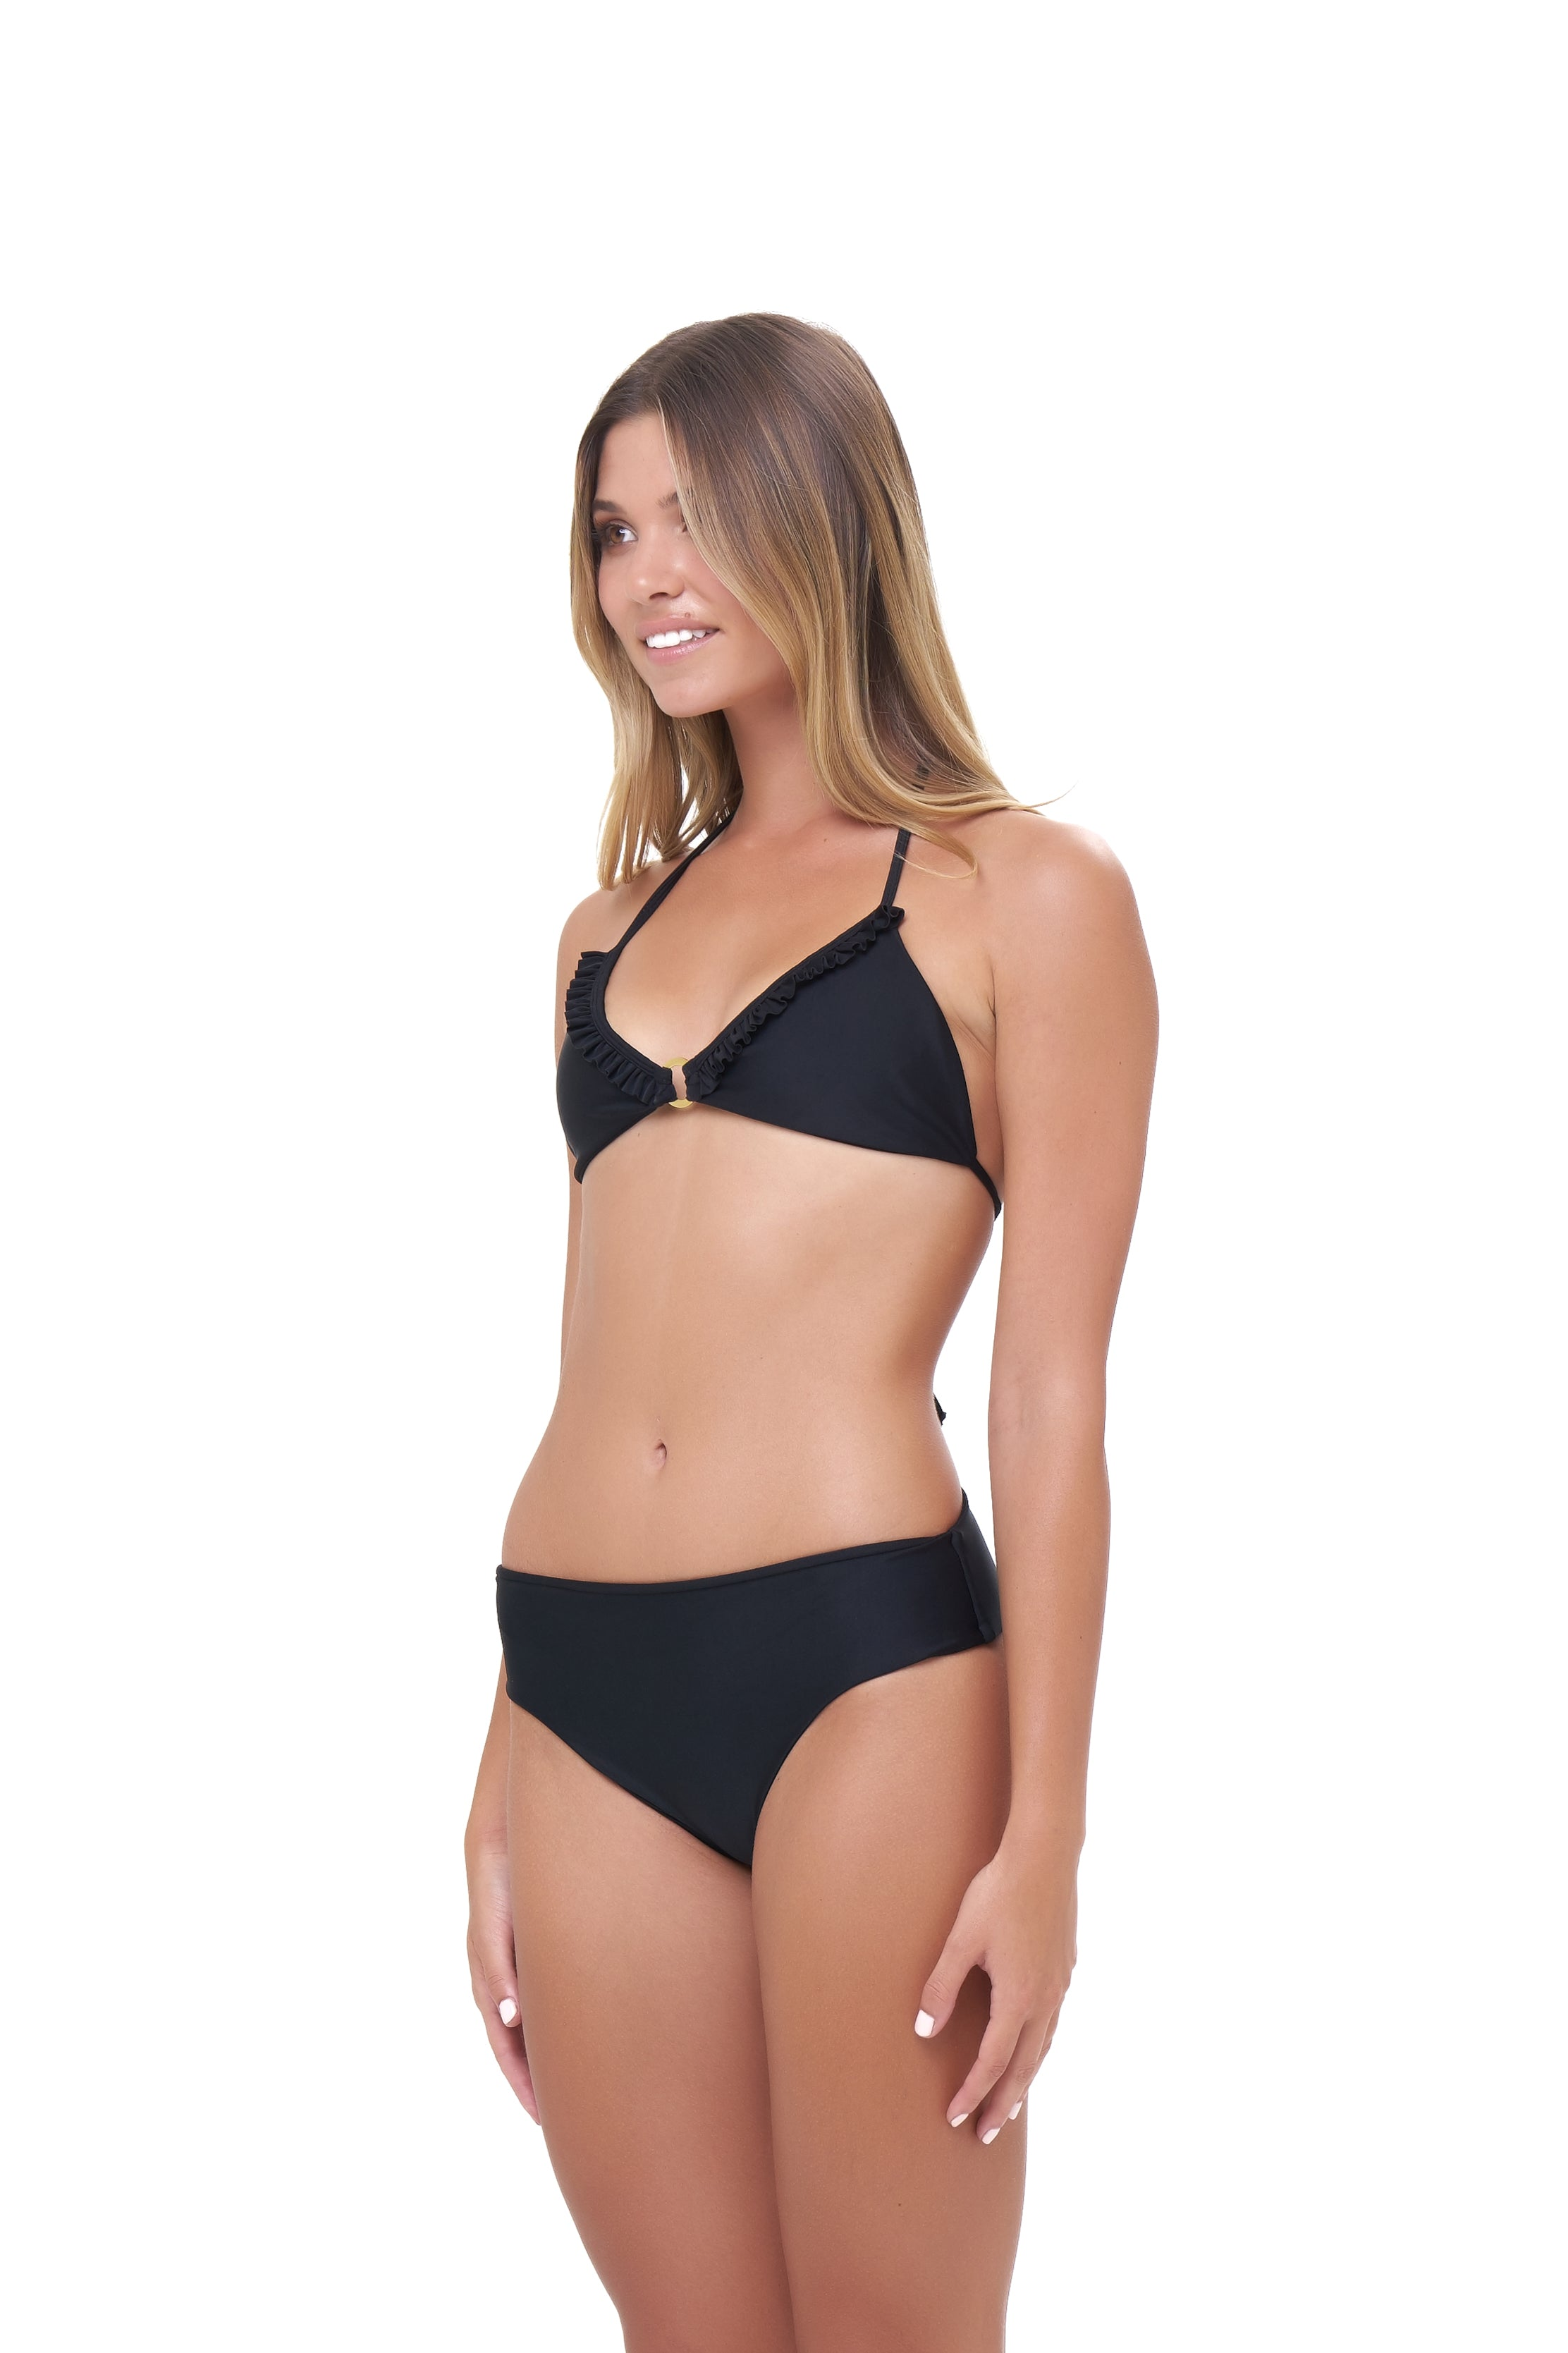 Storm Swimwear - Lagos - More Coverage Brief in Black